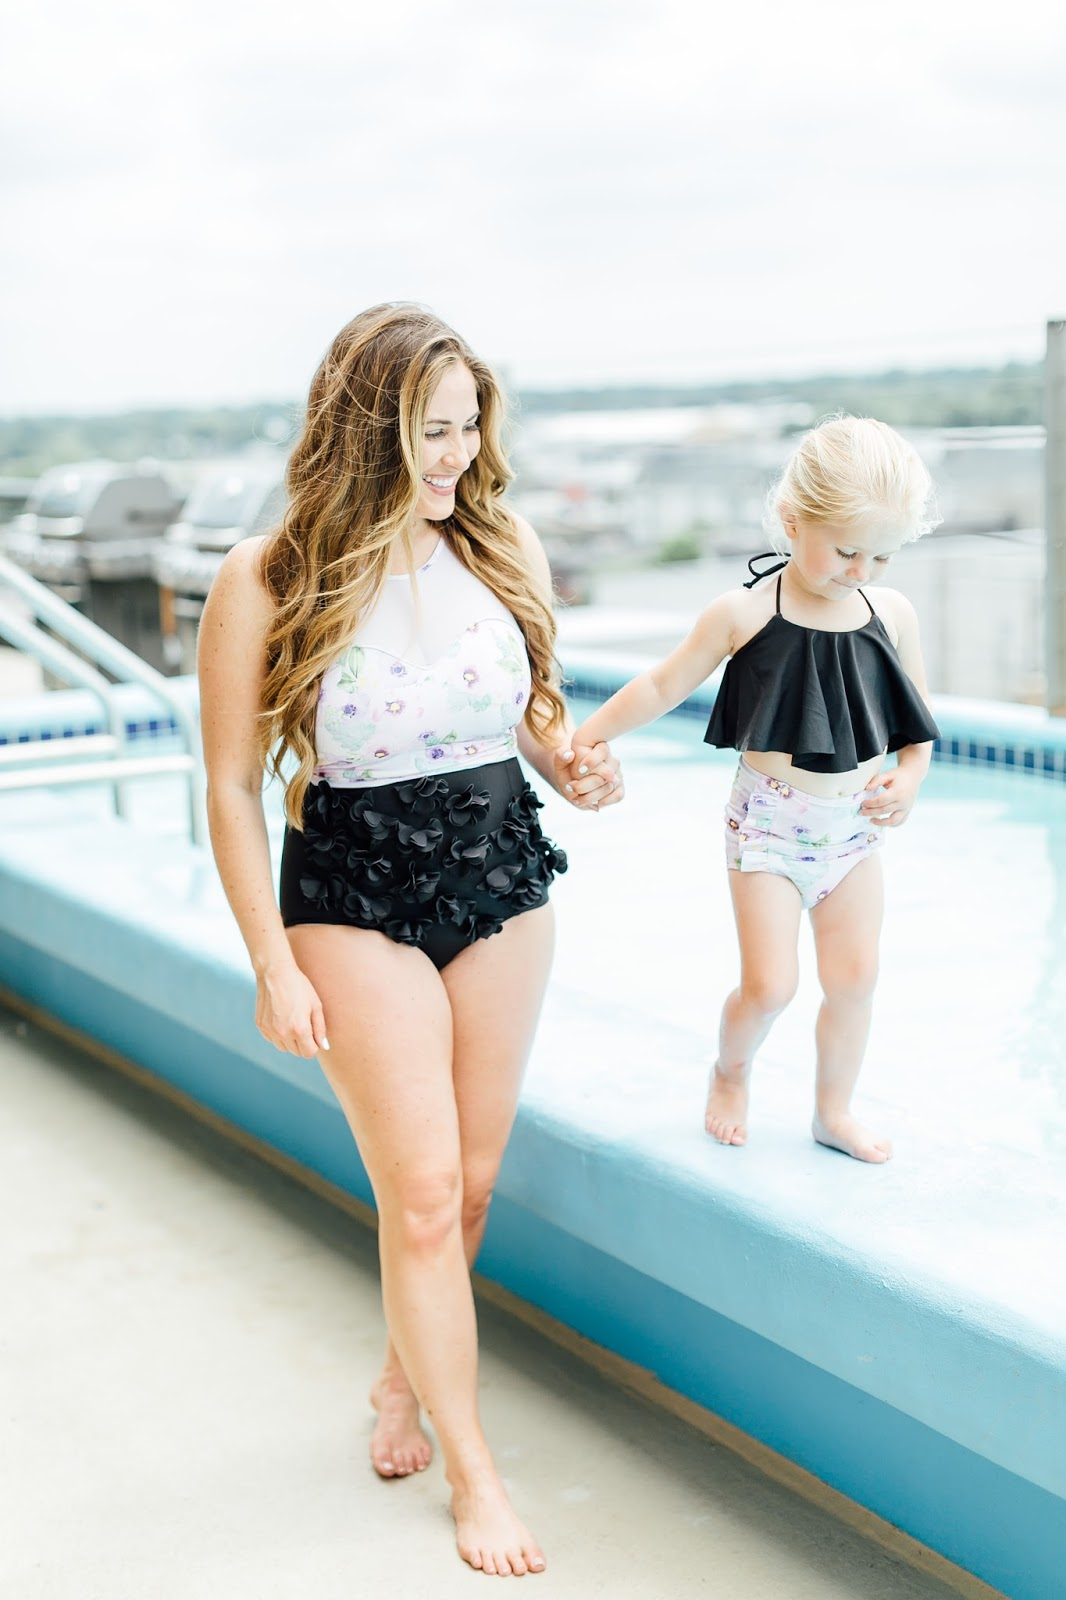 Trend Spin Linkup - Kortni Jeans Swimwear Giveaway by fashion blogger Laura of Walking in Memphis in High Heels